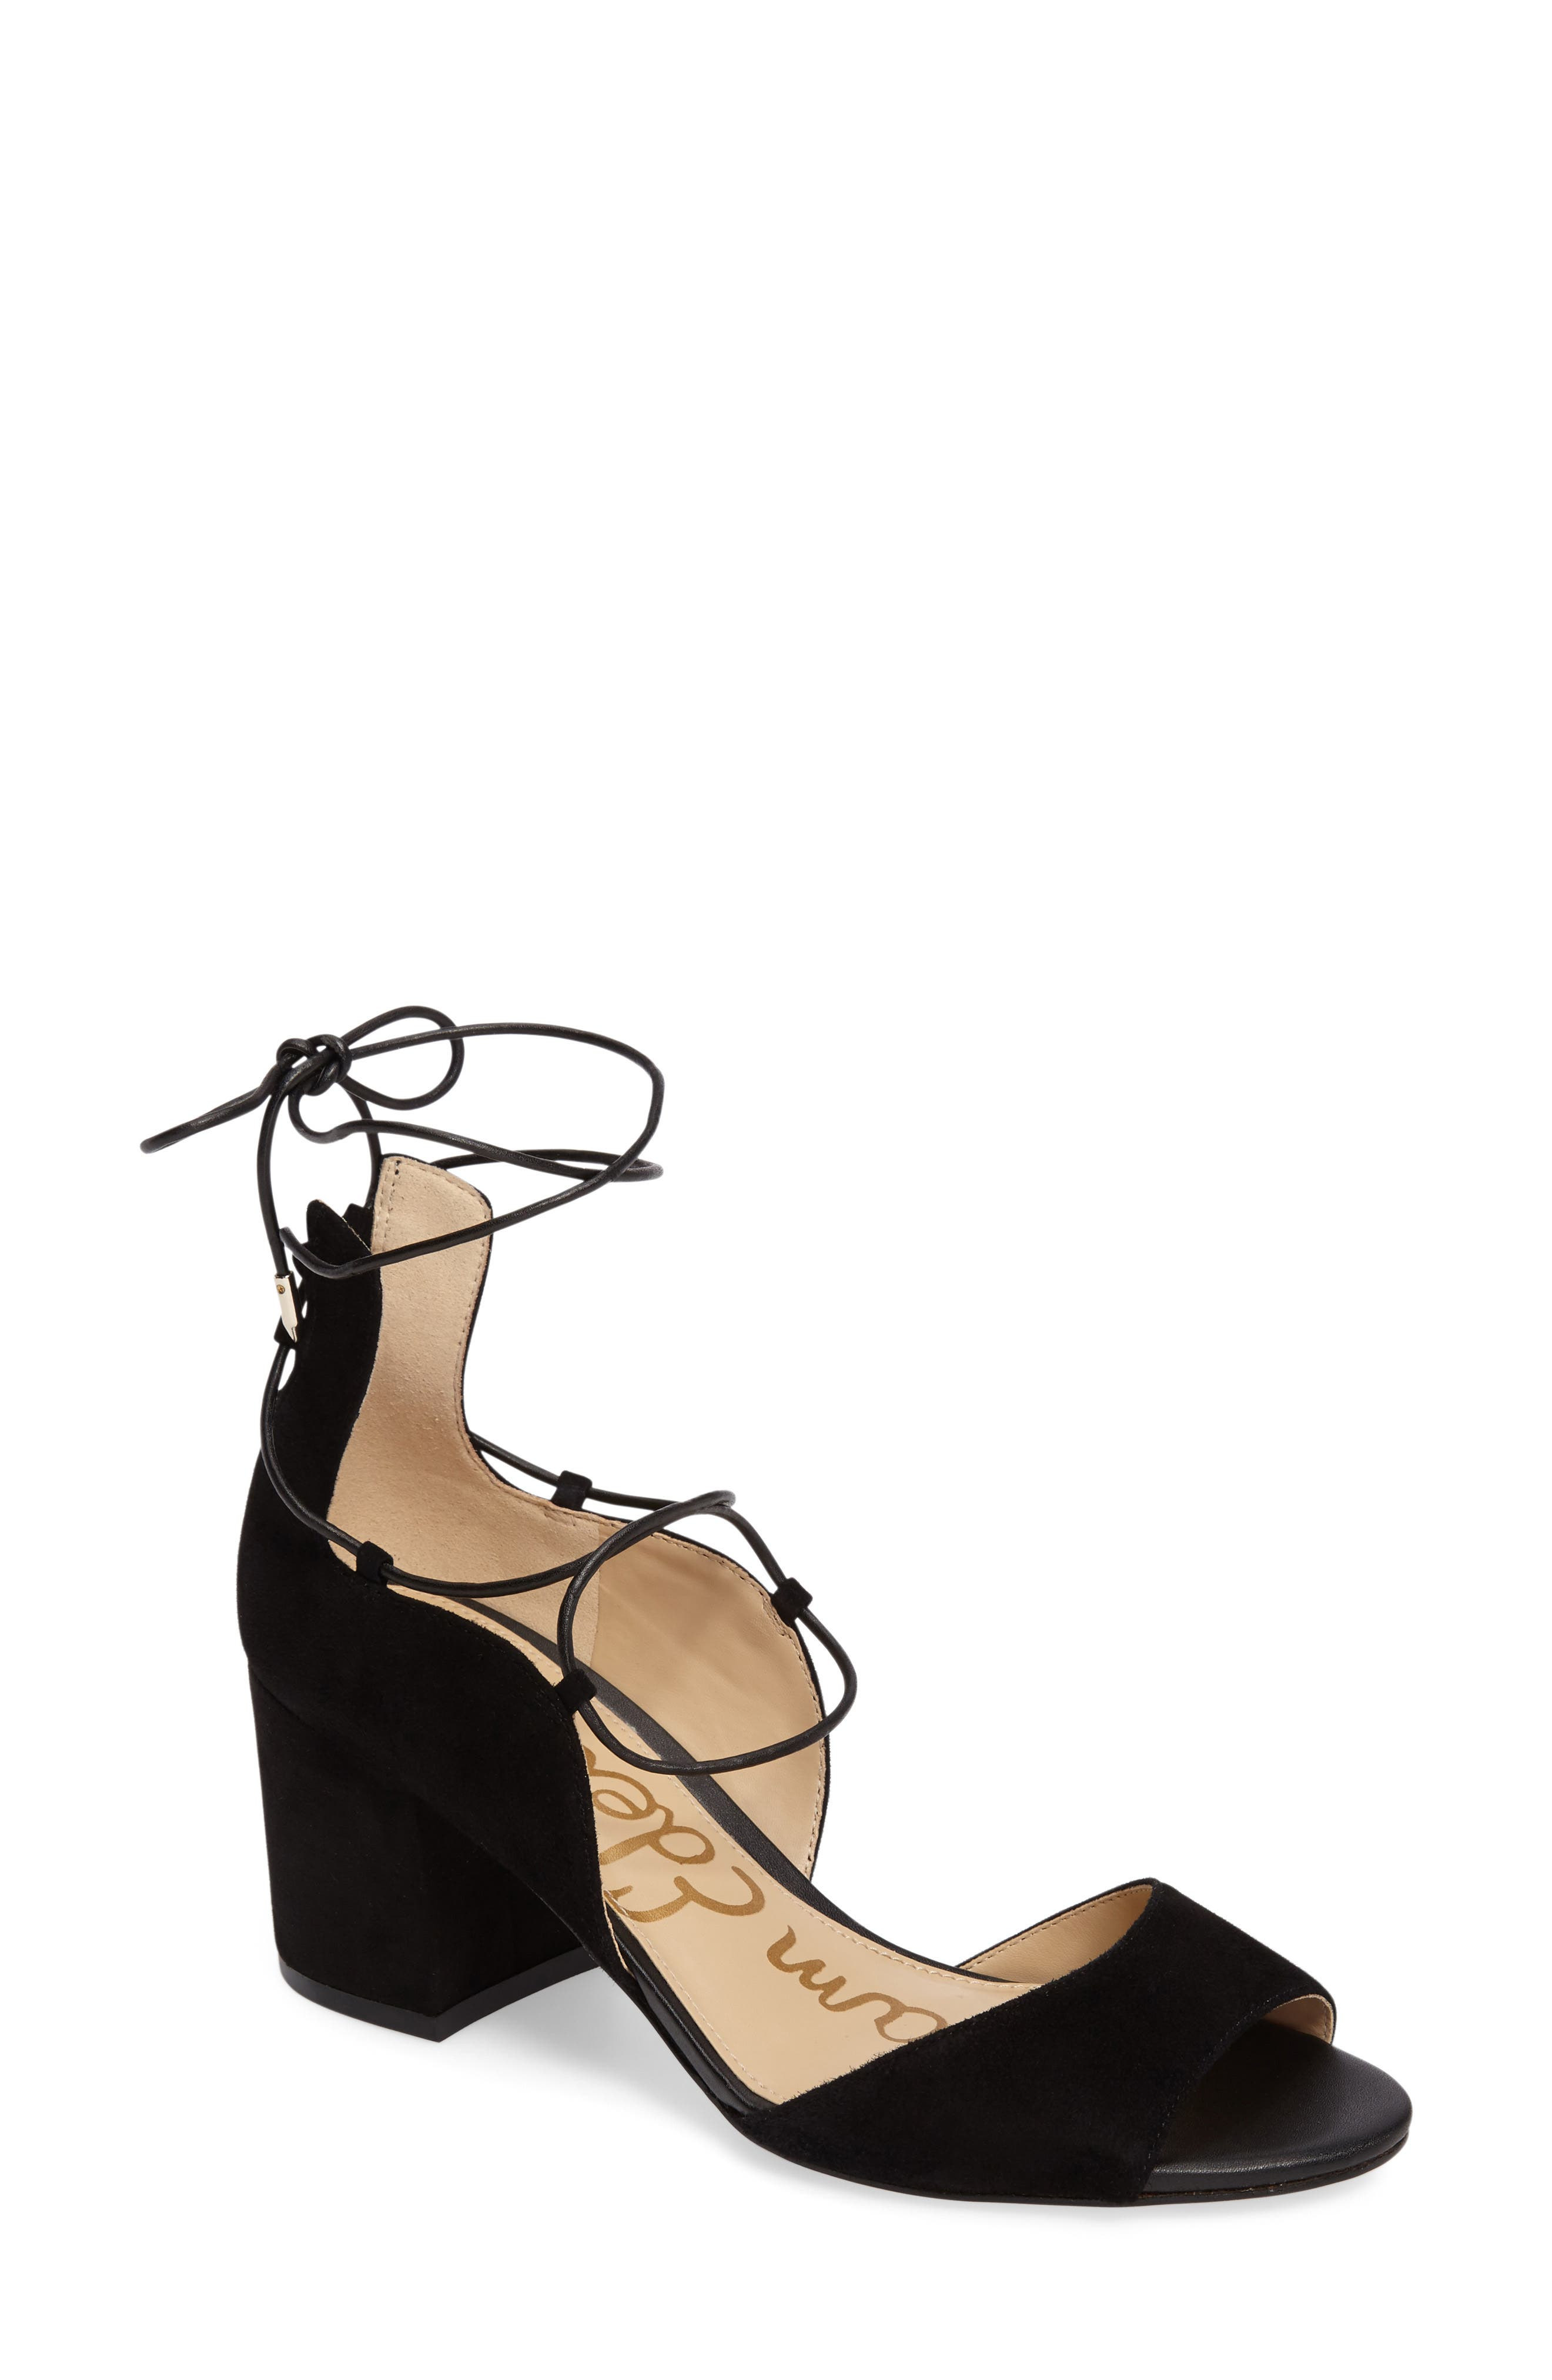 Serene Lace-Up Sandal,                         Main,                         color, 001